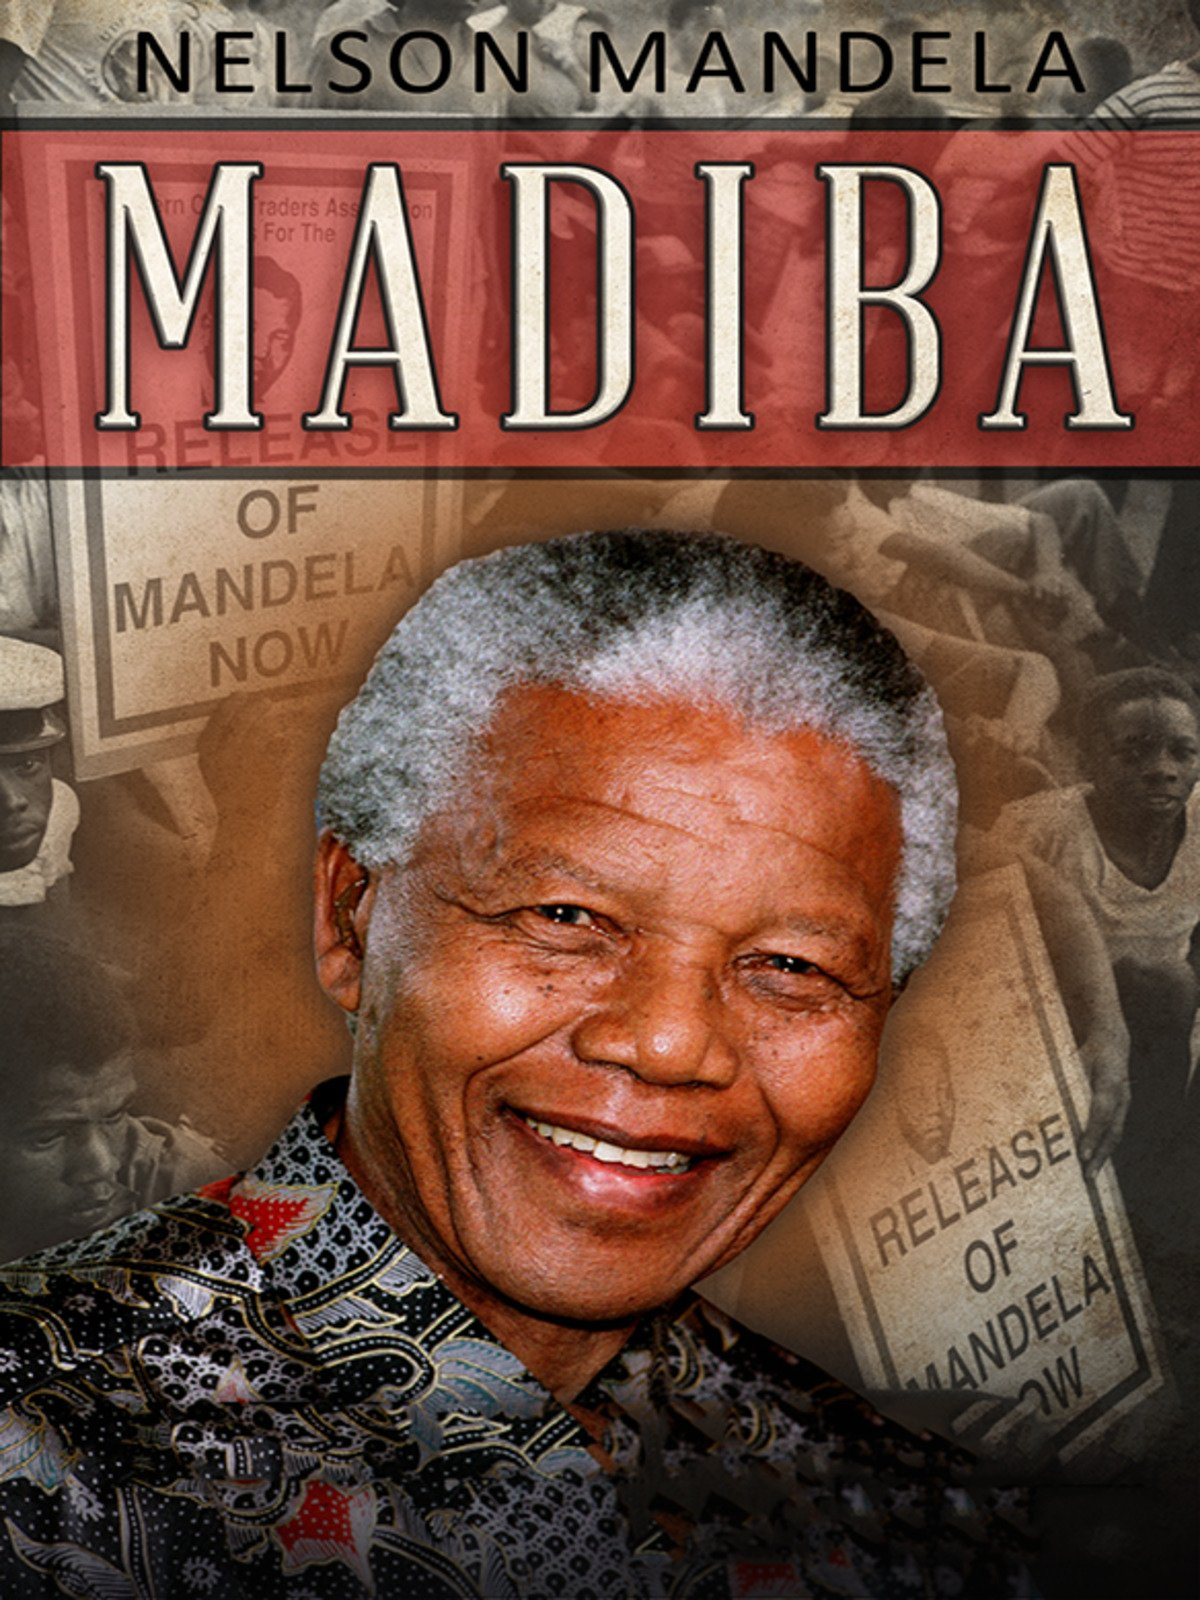 Nelson Mandela: Madiba on Amazon Prime Instant Video UK